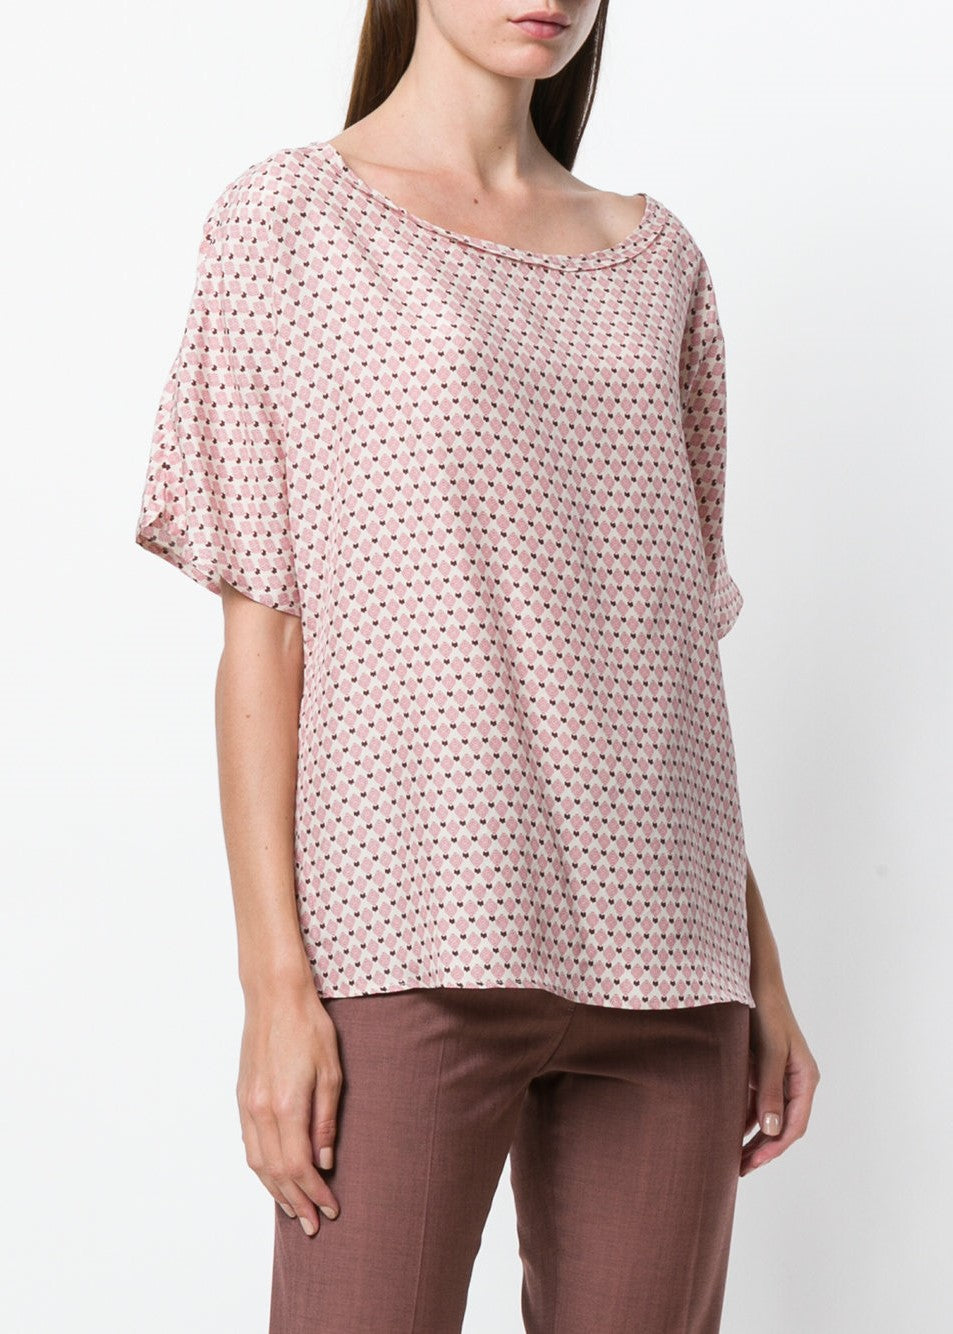 Diega Tilana top in pink print